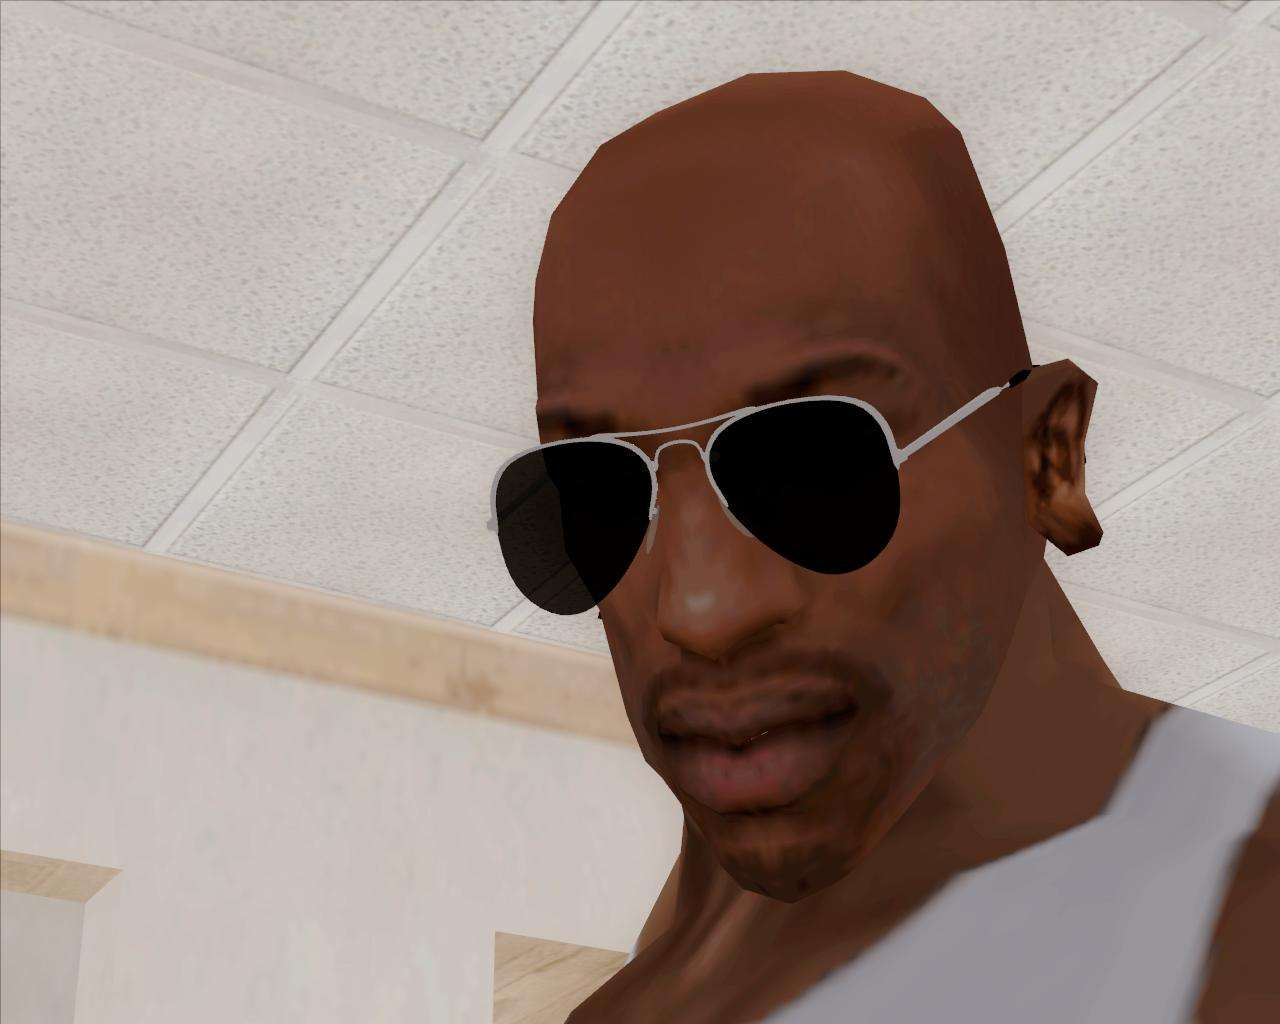 Hd Air Jordan Wallpaper Black Aviator Sunglasses For Gta San Andreas